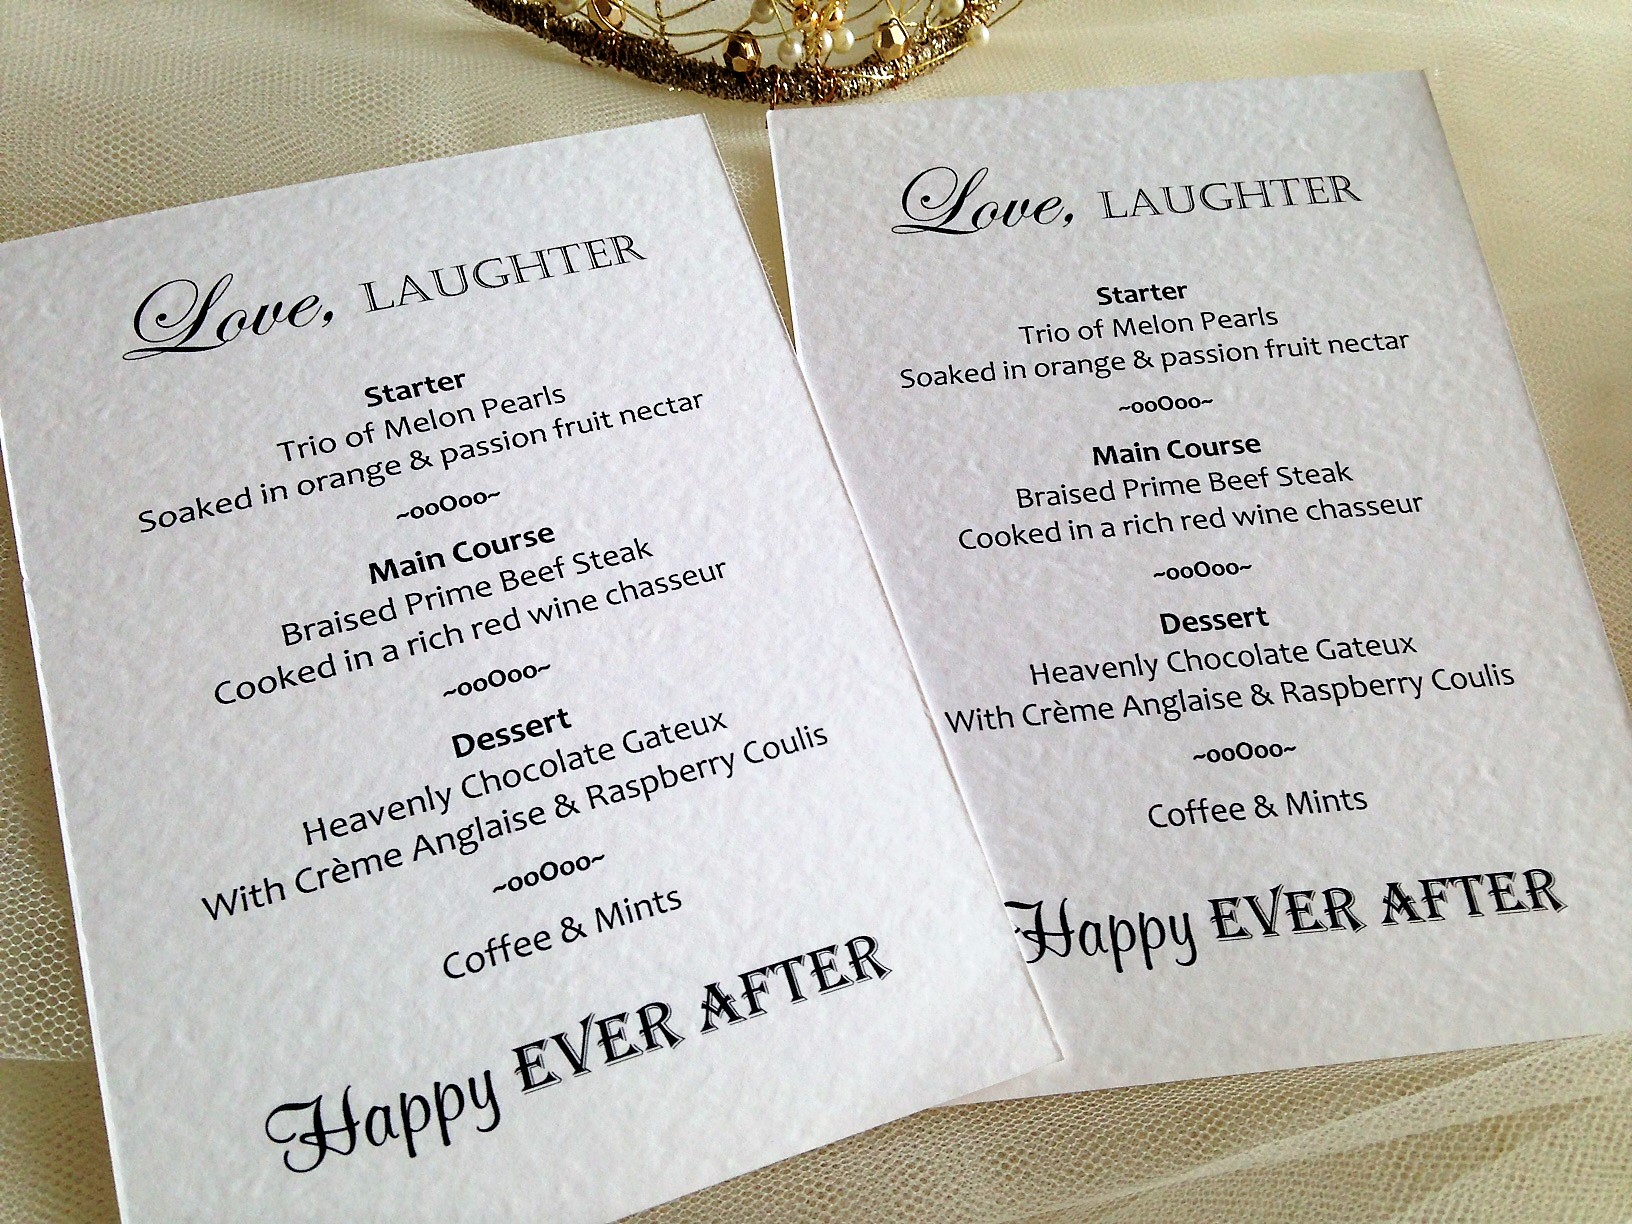 Love Laughter Happy Ever After Personalised Menus